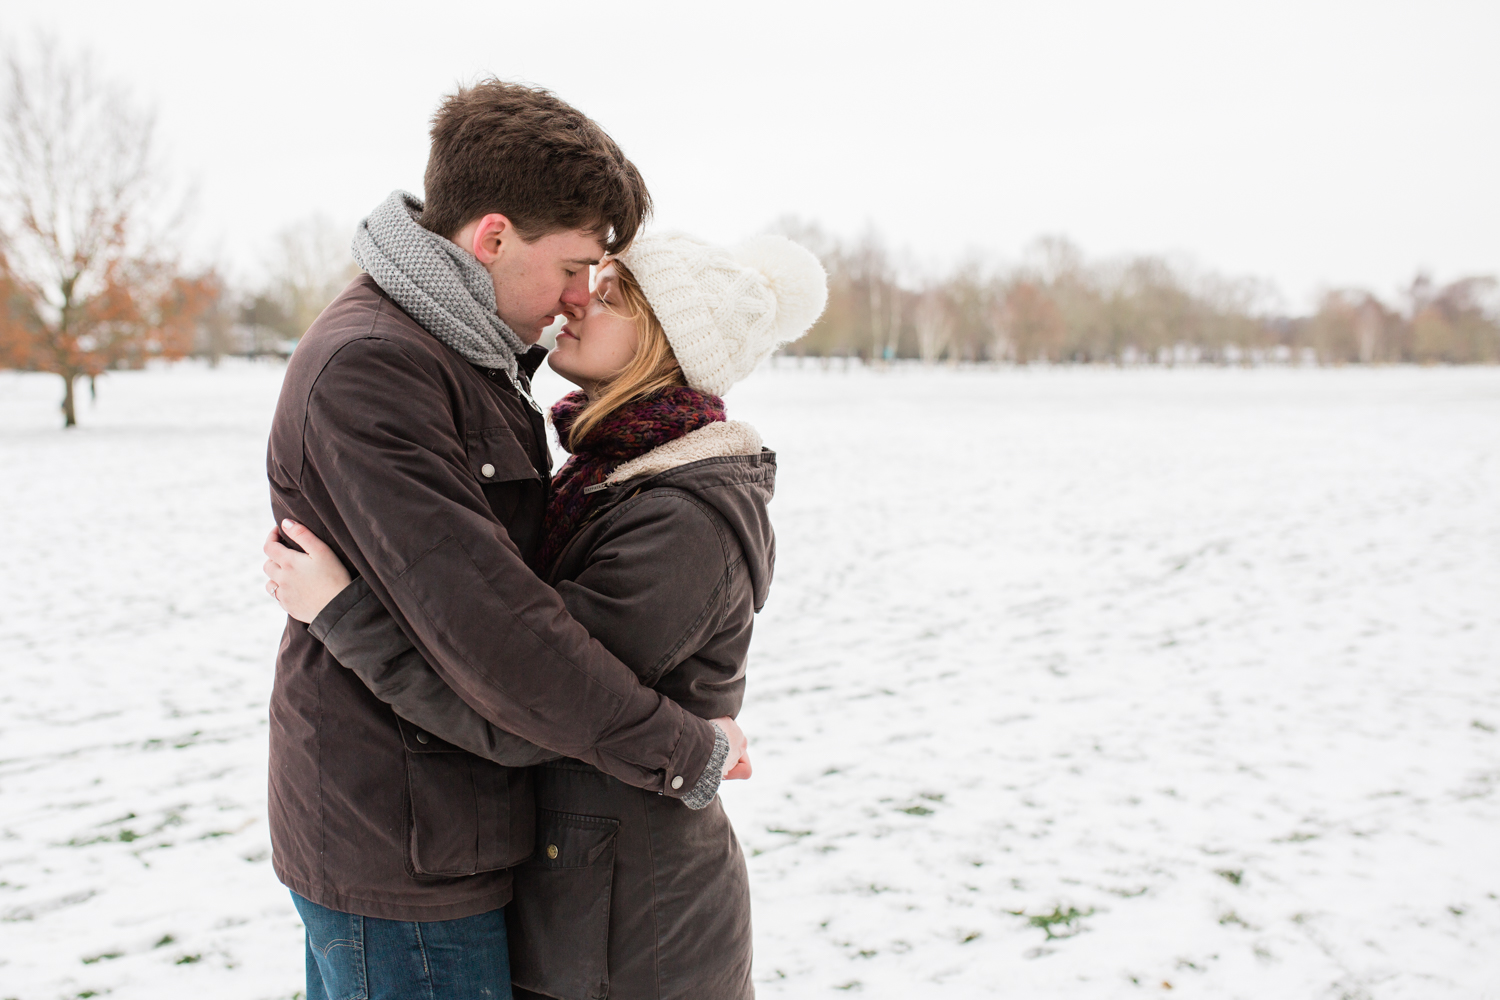 Alice & James - Stratford Upon Avon Engagement shoot - Sophie Evans Photography-14.jpg